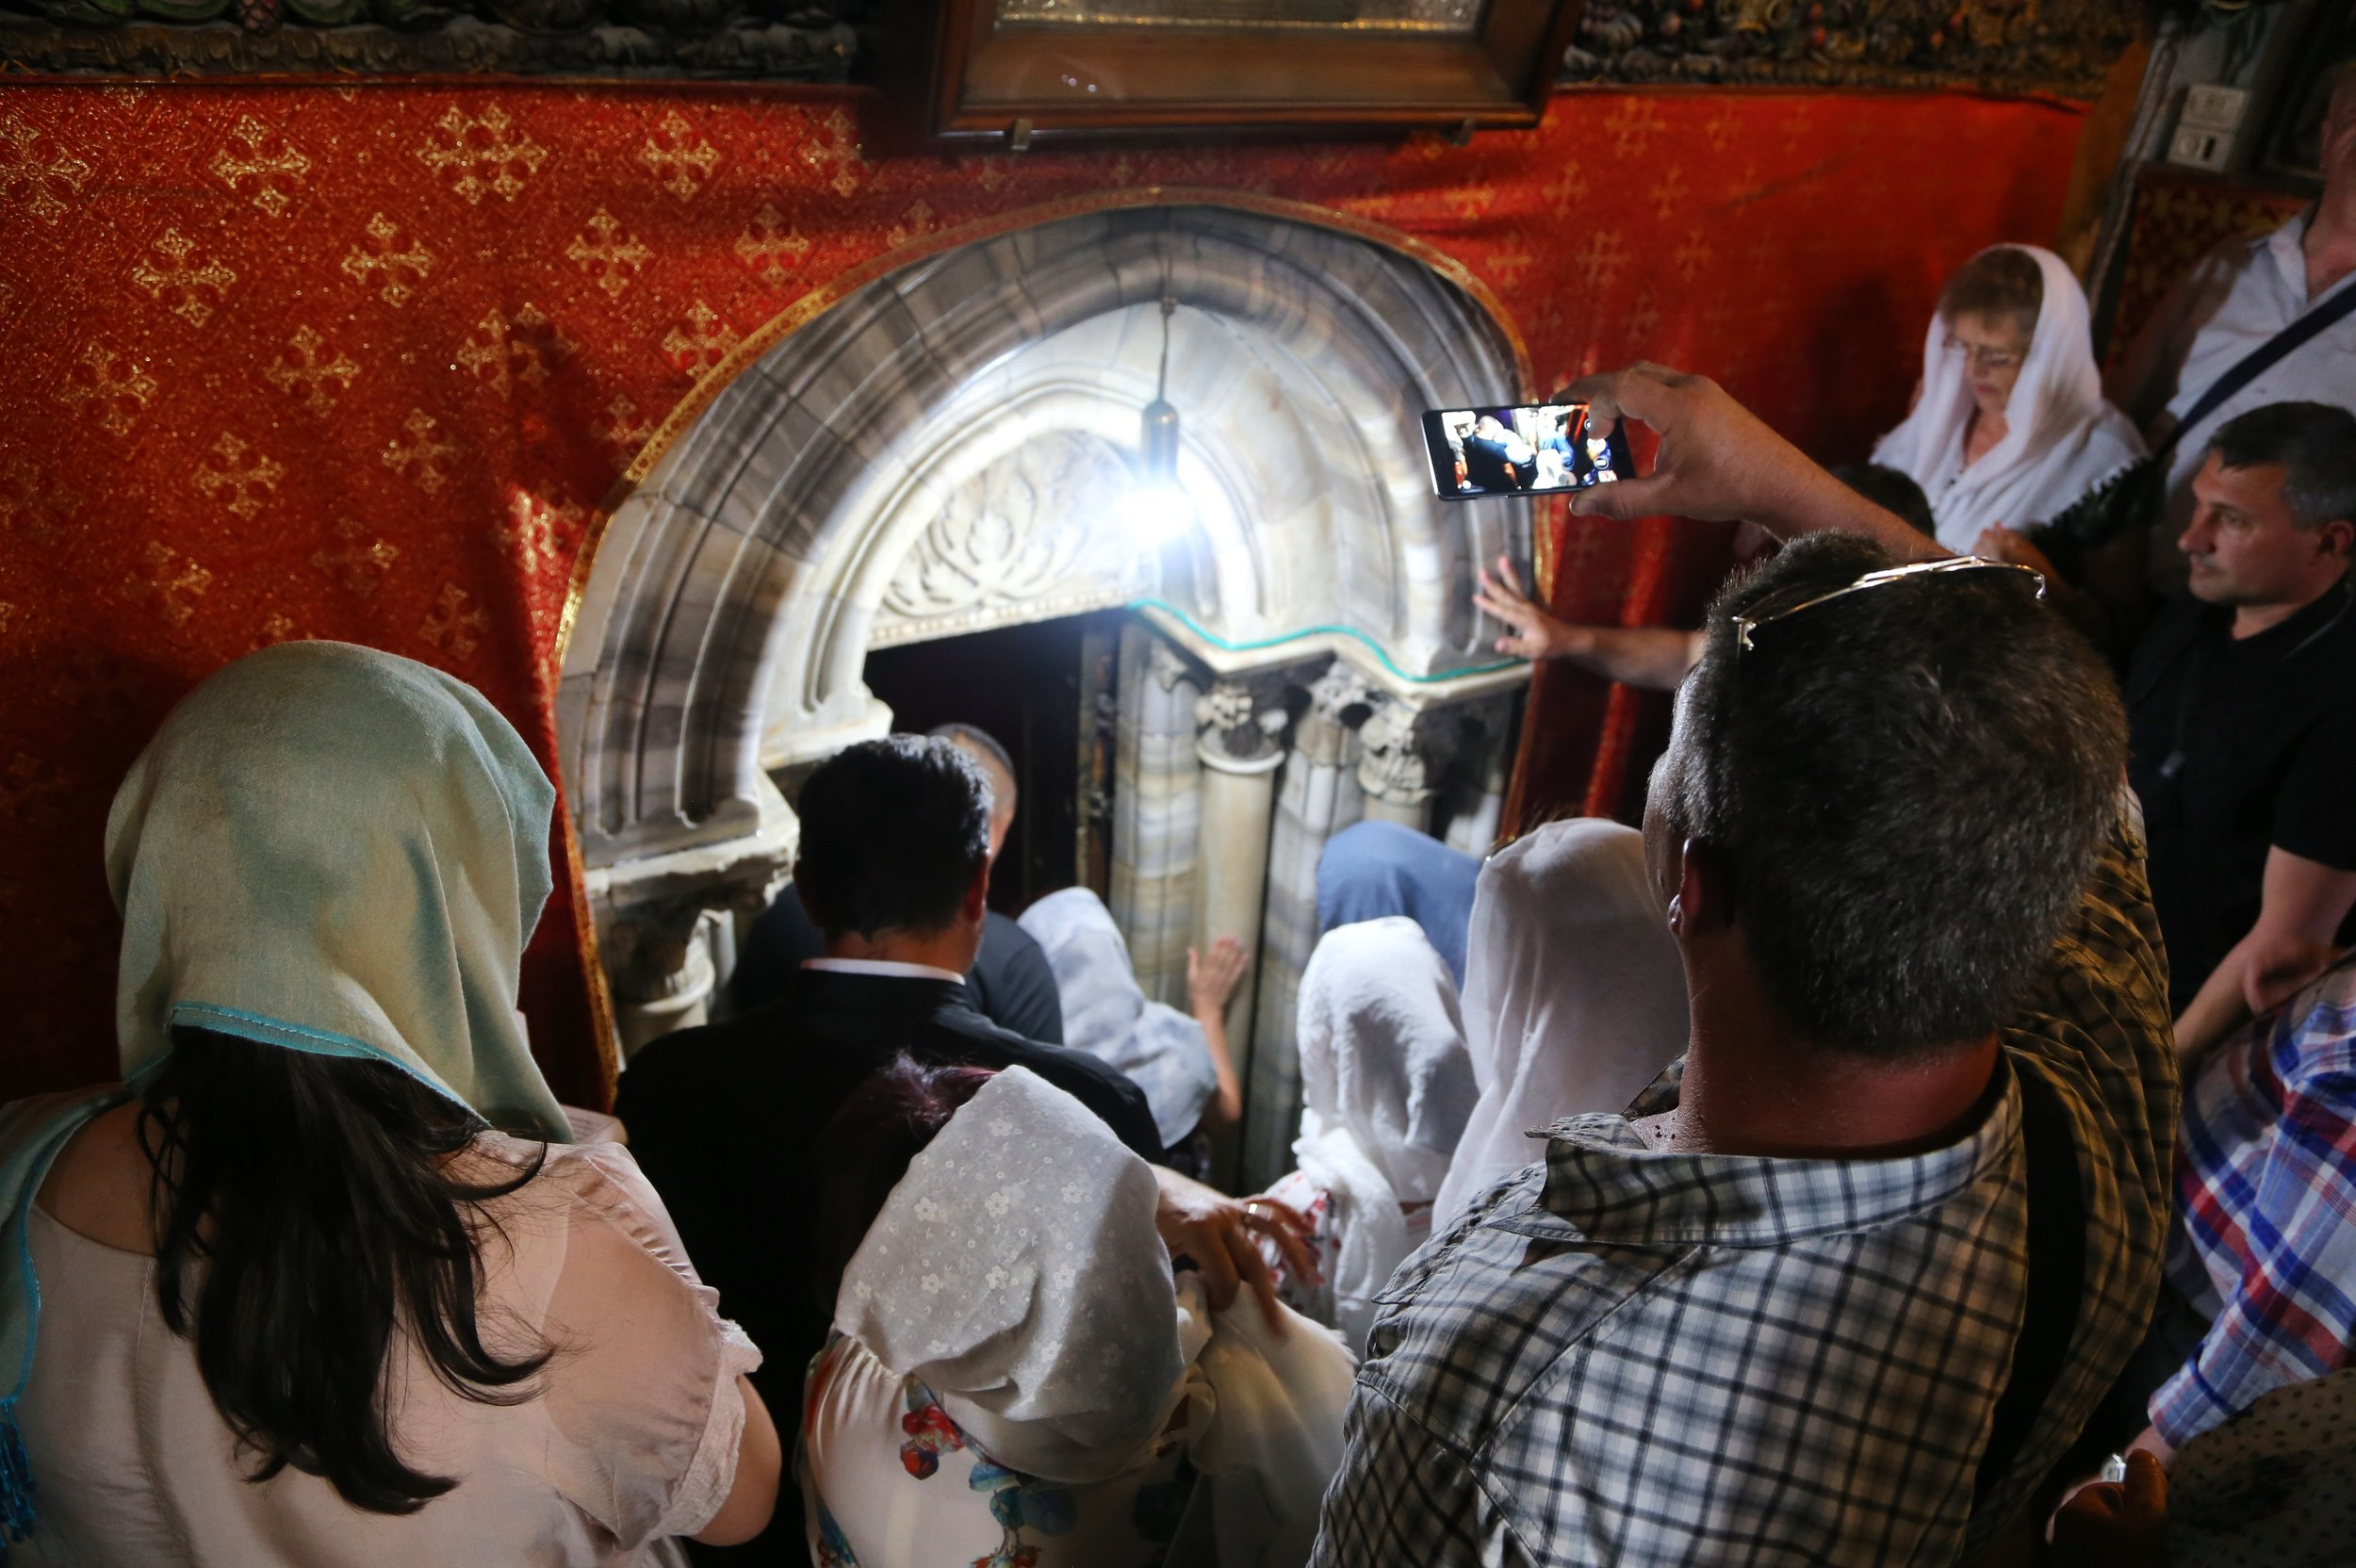 Crowds waiting to get into the lower level at the Church of the Nativity